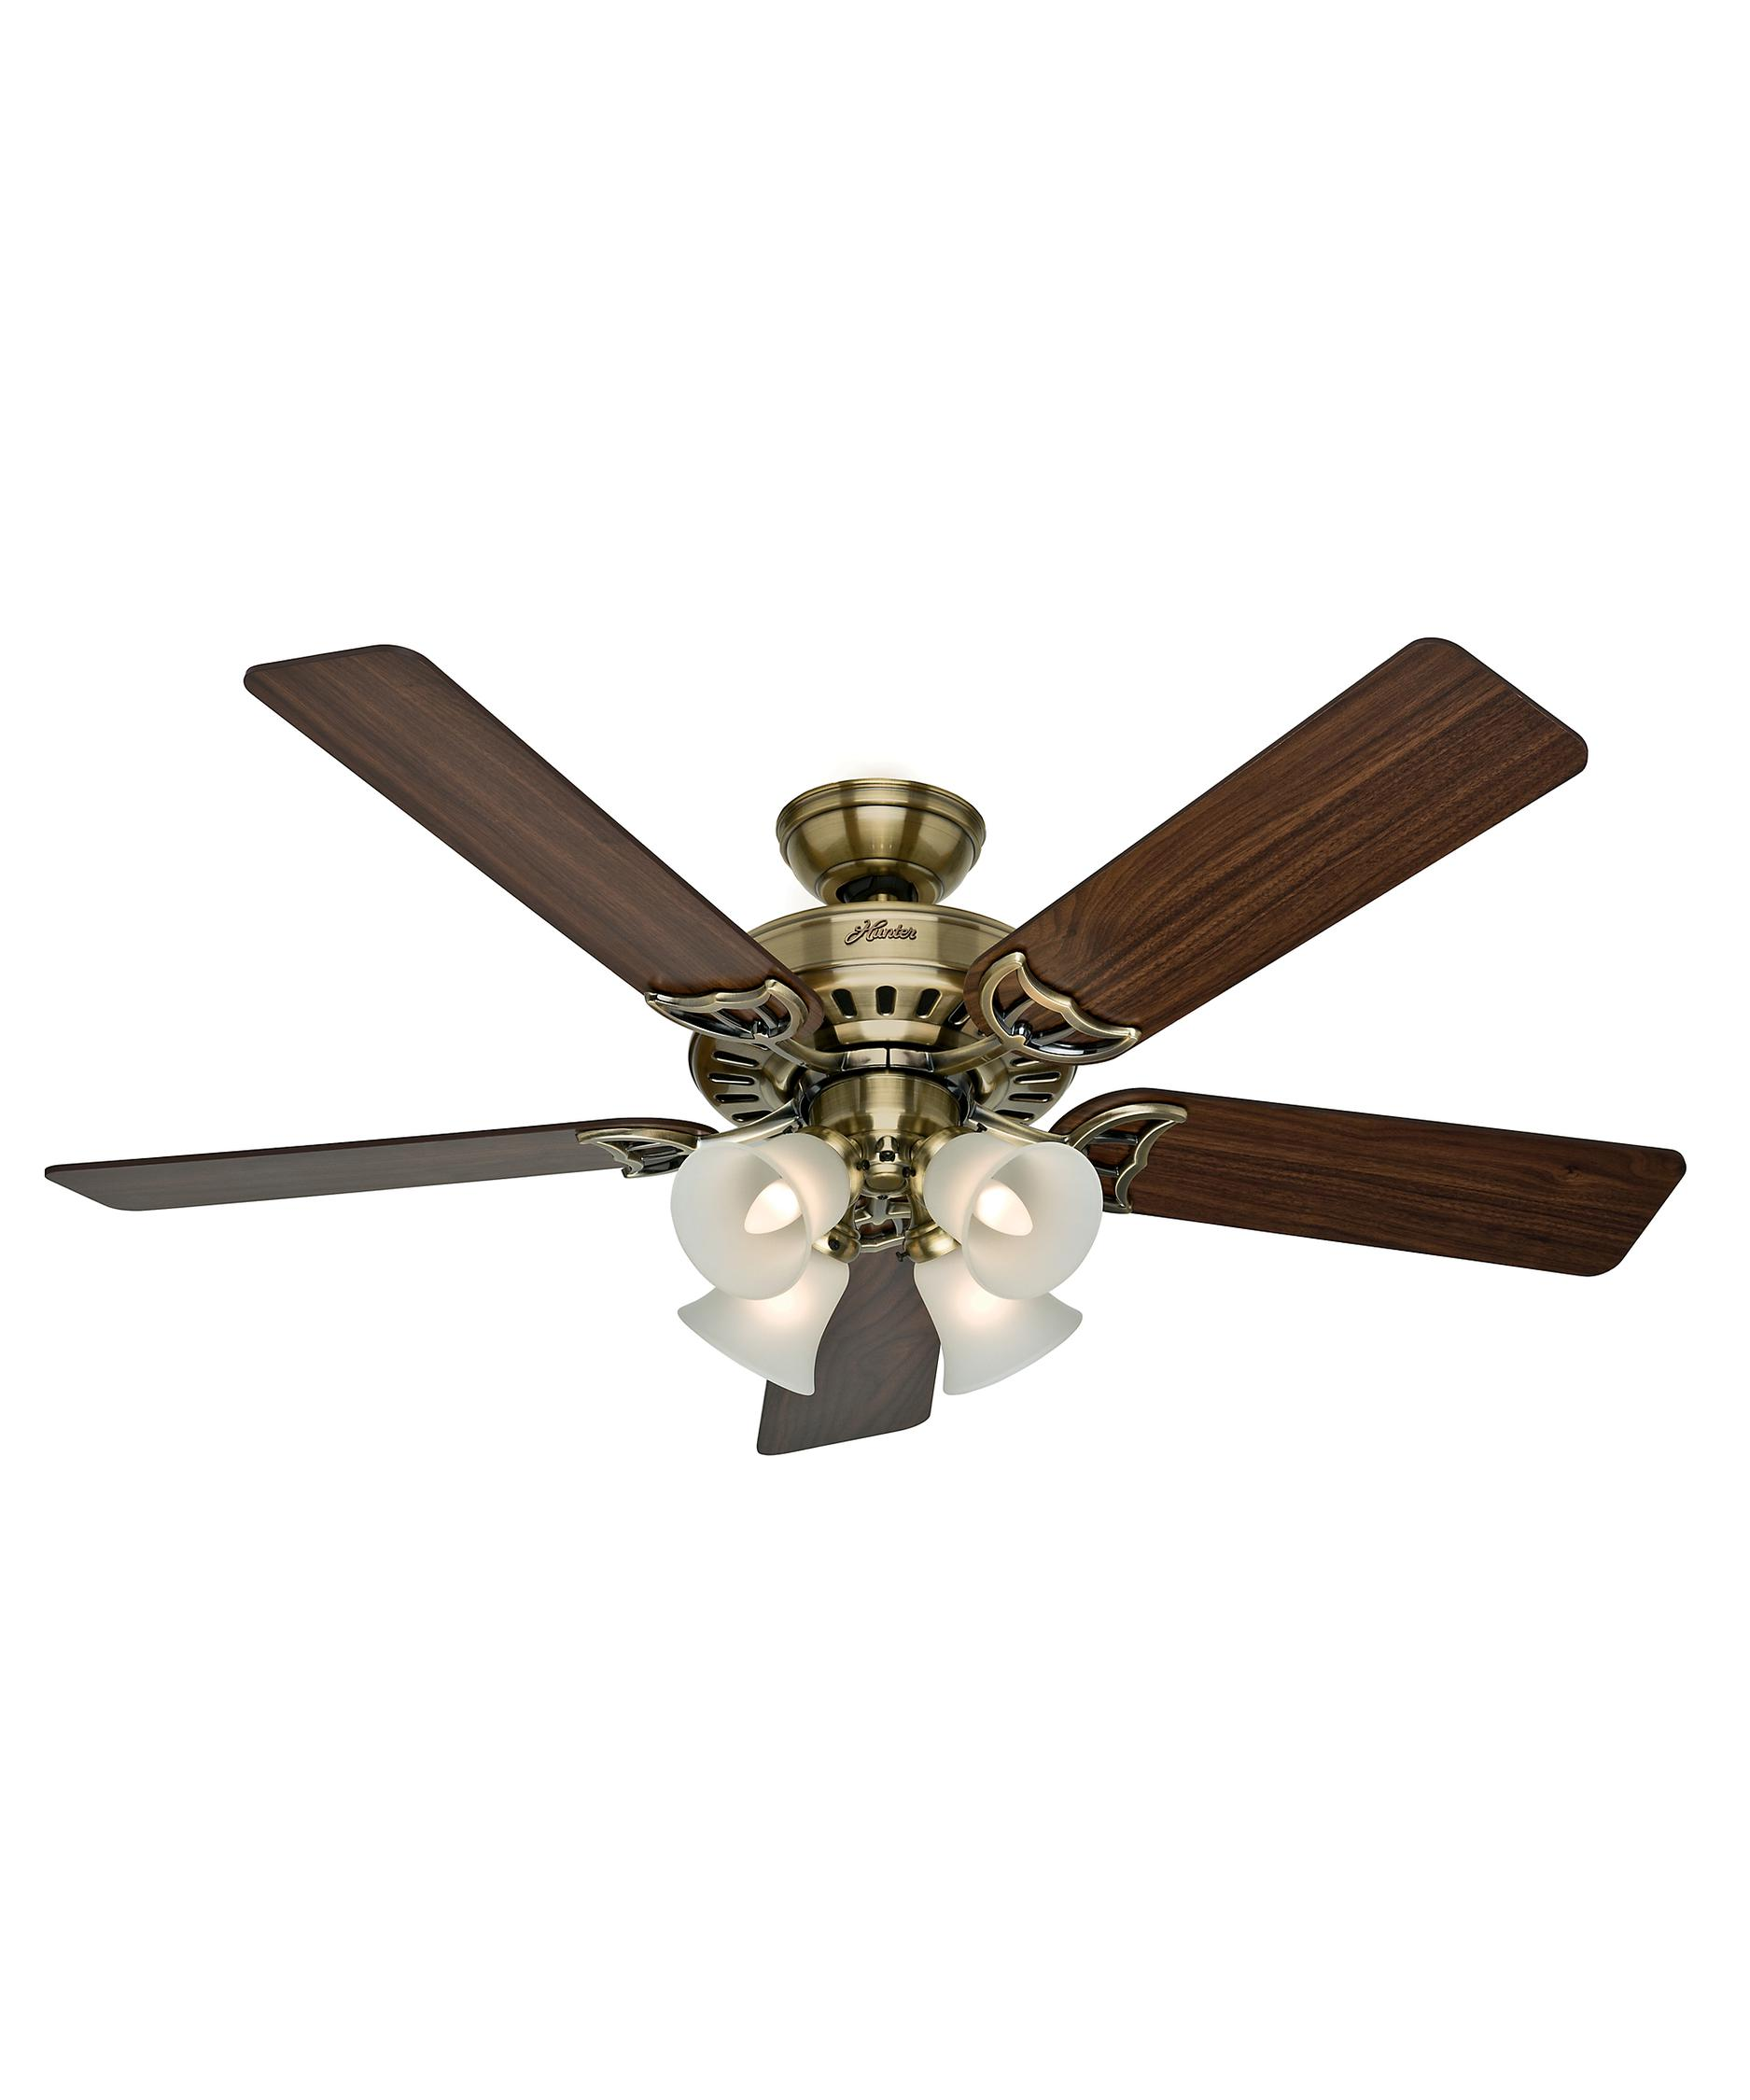 hunter fan 53063 studio series 52 inch ceiling fan with light kit. Black Bedroom Furniture Sets. Home Design Ideas